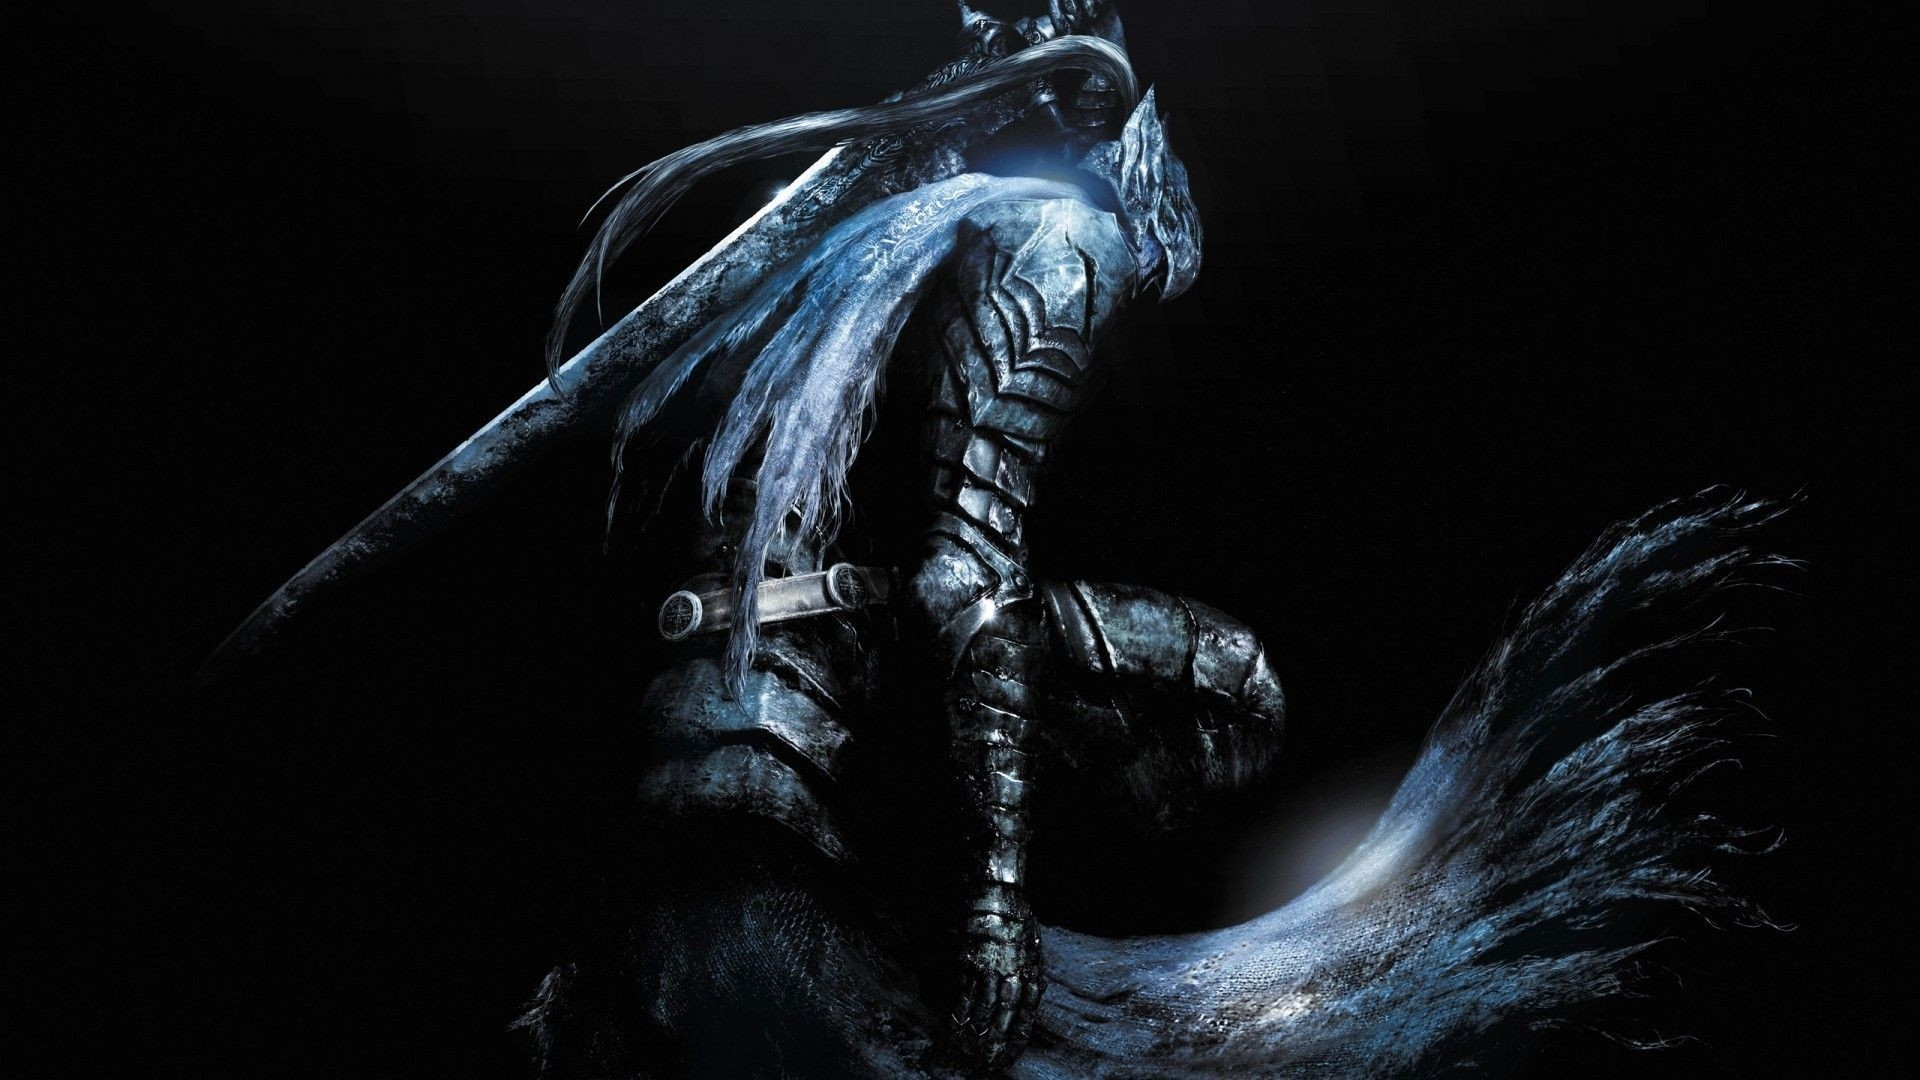 1920x1080 Artorias Dark Souls iii Wallpaper